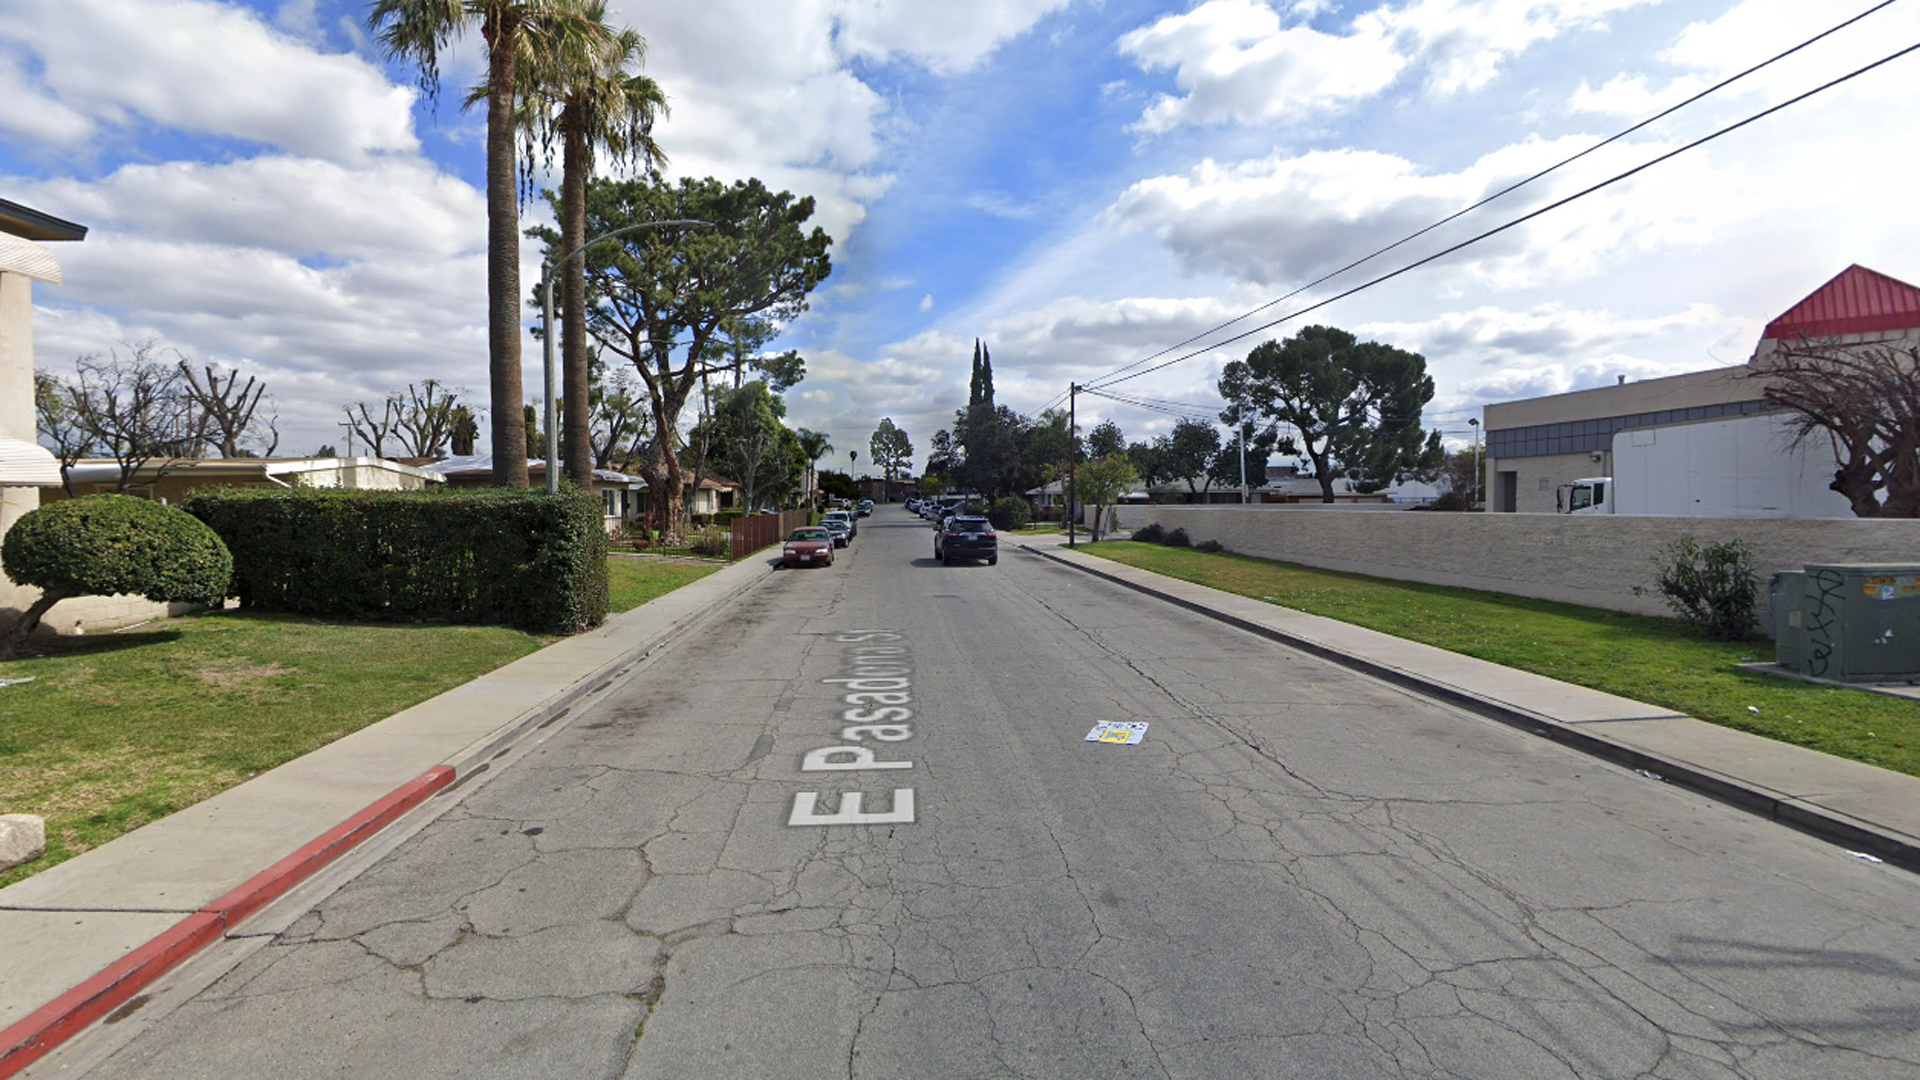 The 1100 block of East Pasadena Avenue in Pomona, as viewed in a Google Street View image.